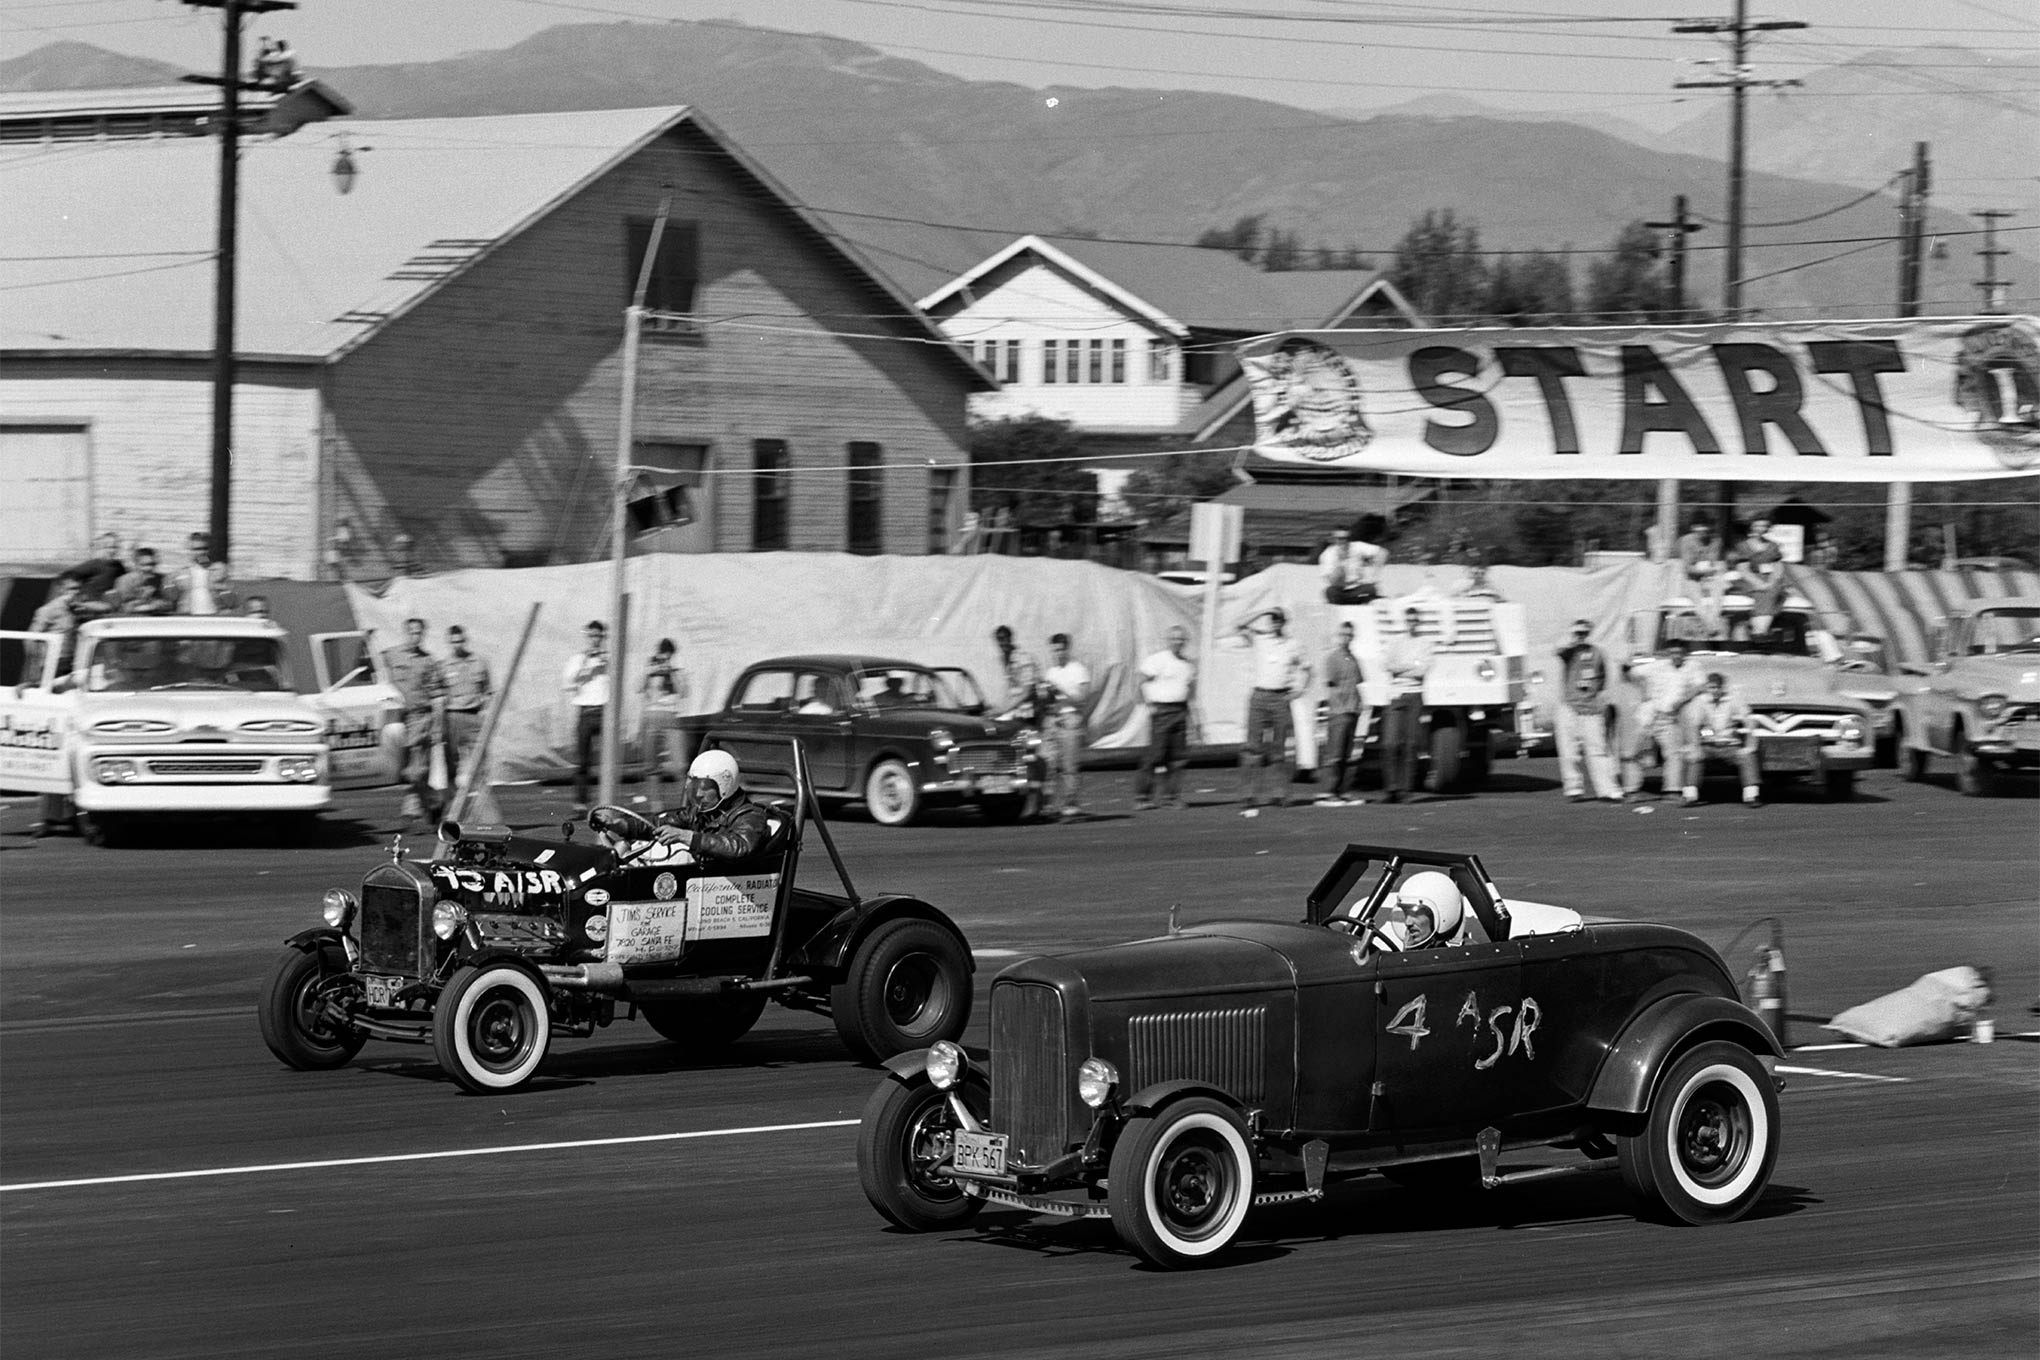 The man that would go on to start Street Rodder magazine 10 years later is Tom McMullen in the near lane in his pre-flamed Deuce roadster running in A Street Roadster against Jim Cassedy in his blown Chrysler T roadster. Cassedy would go on to win the class.